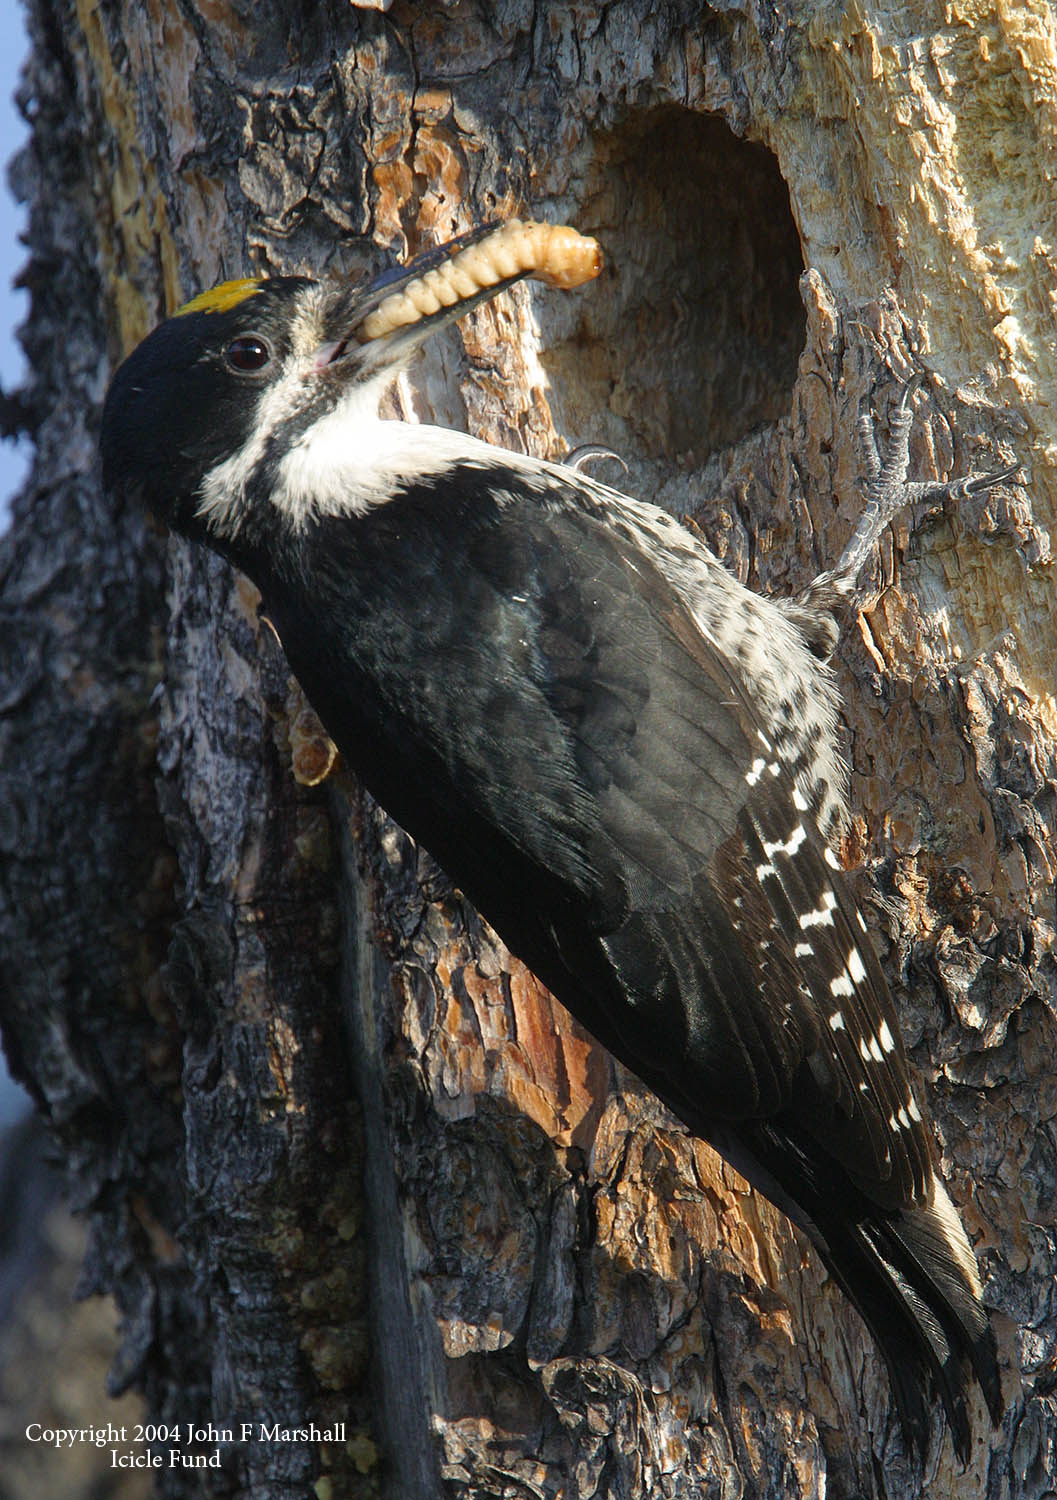 A male black-backed woodpecker delivers a larvae from a wood-boring beetle to it's nestlings within a cavity excavated in a living lodgepole pine tree. Wood borers are far larger than bark beetles.  Borers feed on dead wood, seldom killing live trees.  Fires and  bark beetles set up feeding and nesting opportunities for woodpeckers.     Black-backed woodpeckers seek out recent burns in the higher elevation forests for the foraging opportunity.